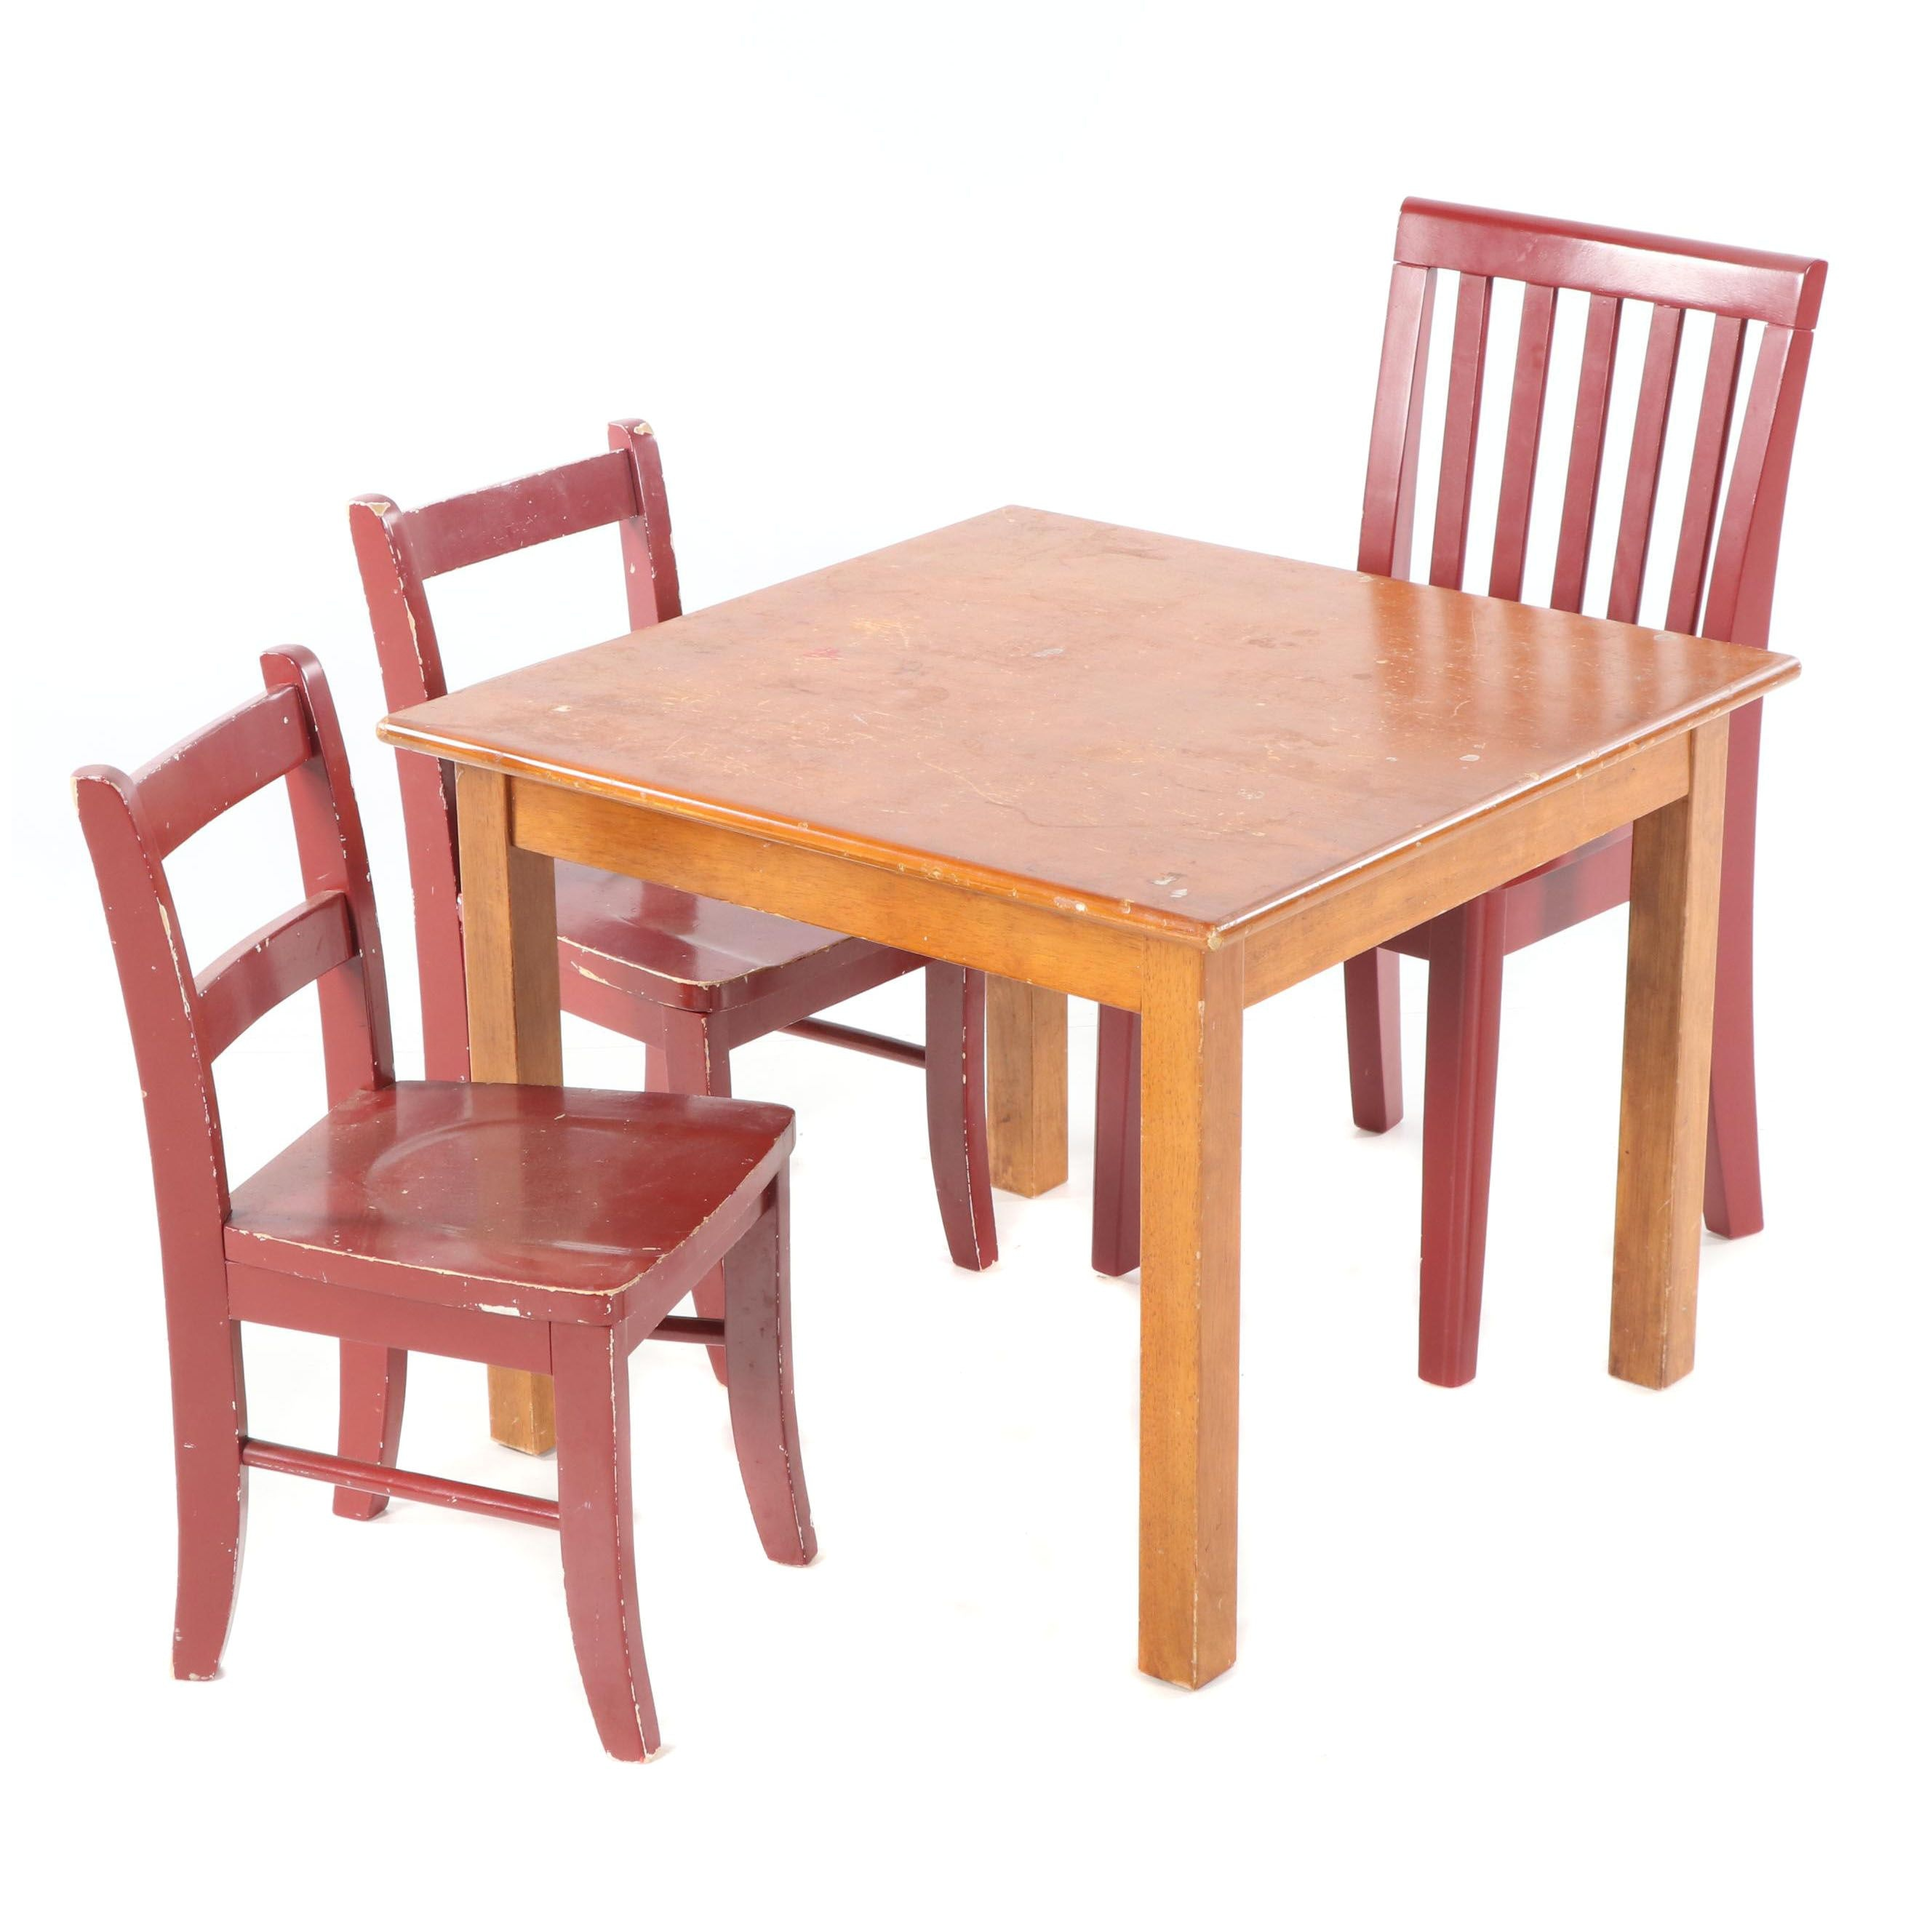 Wooden Children's Table with Painted Side Chairs by Pottery Barn, 21st Century